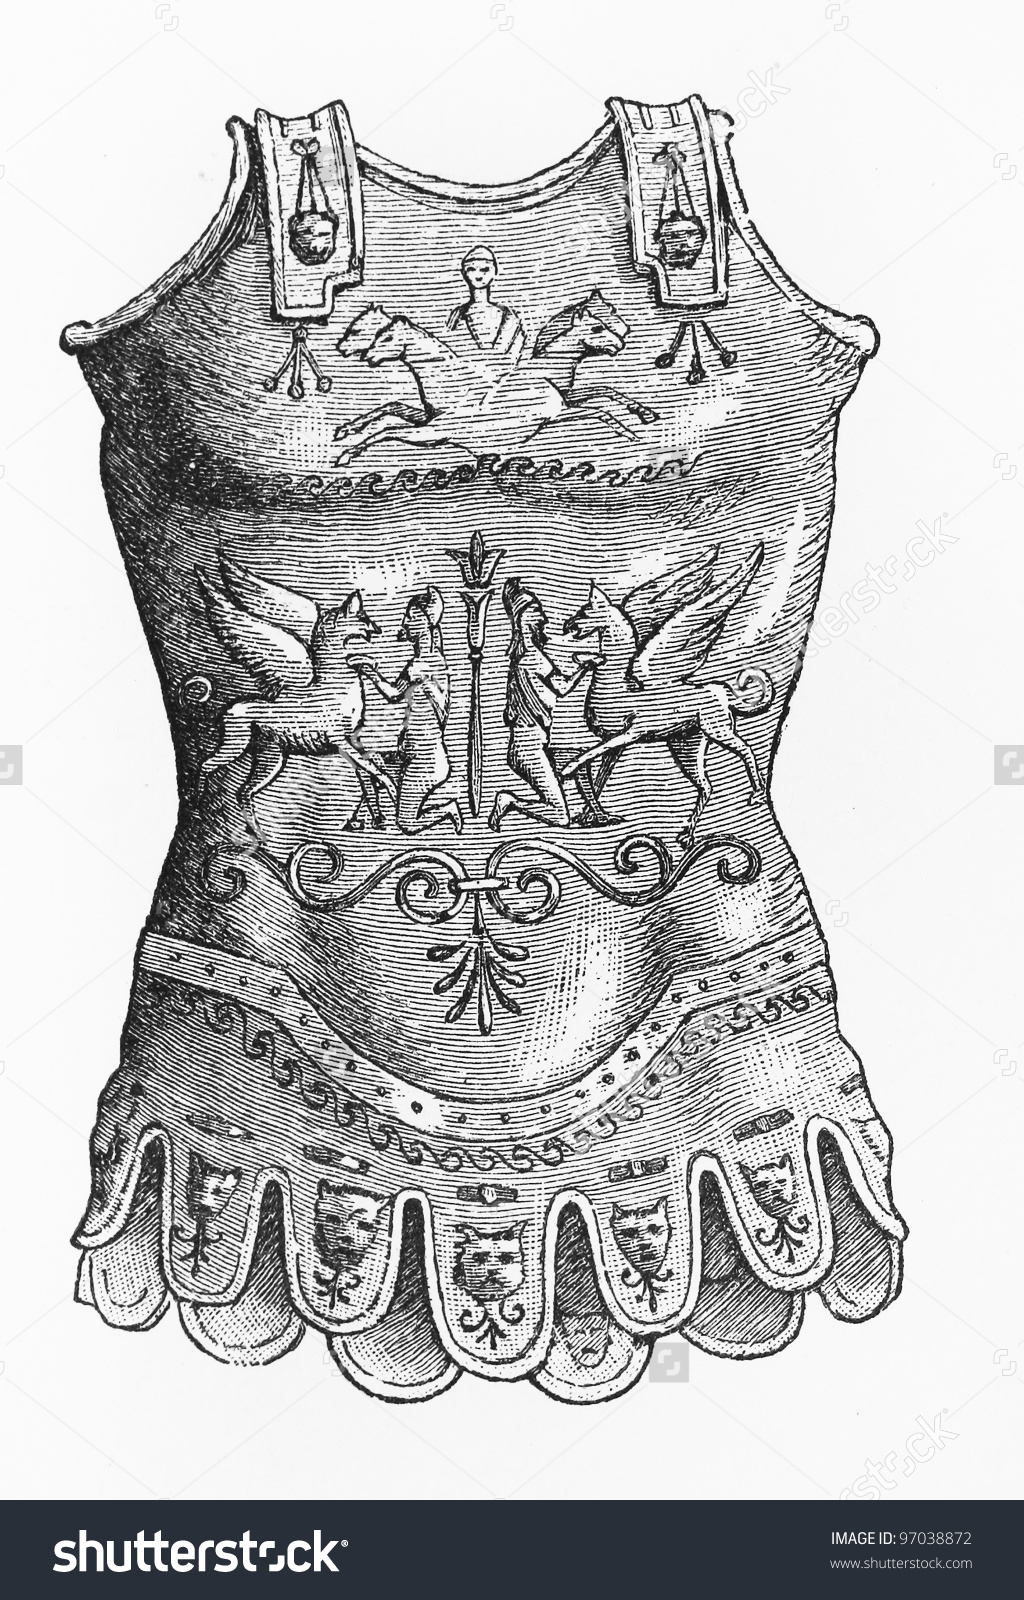 Roman Breast Plate Armor Picture Meyers Stock Photo 97038872.